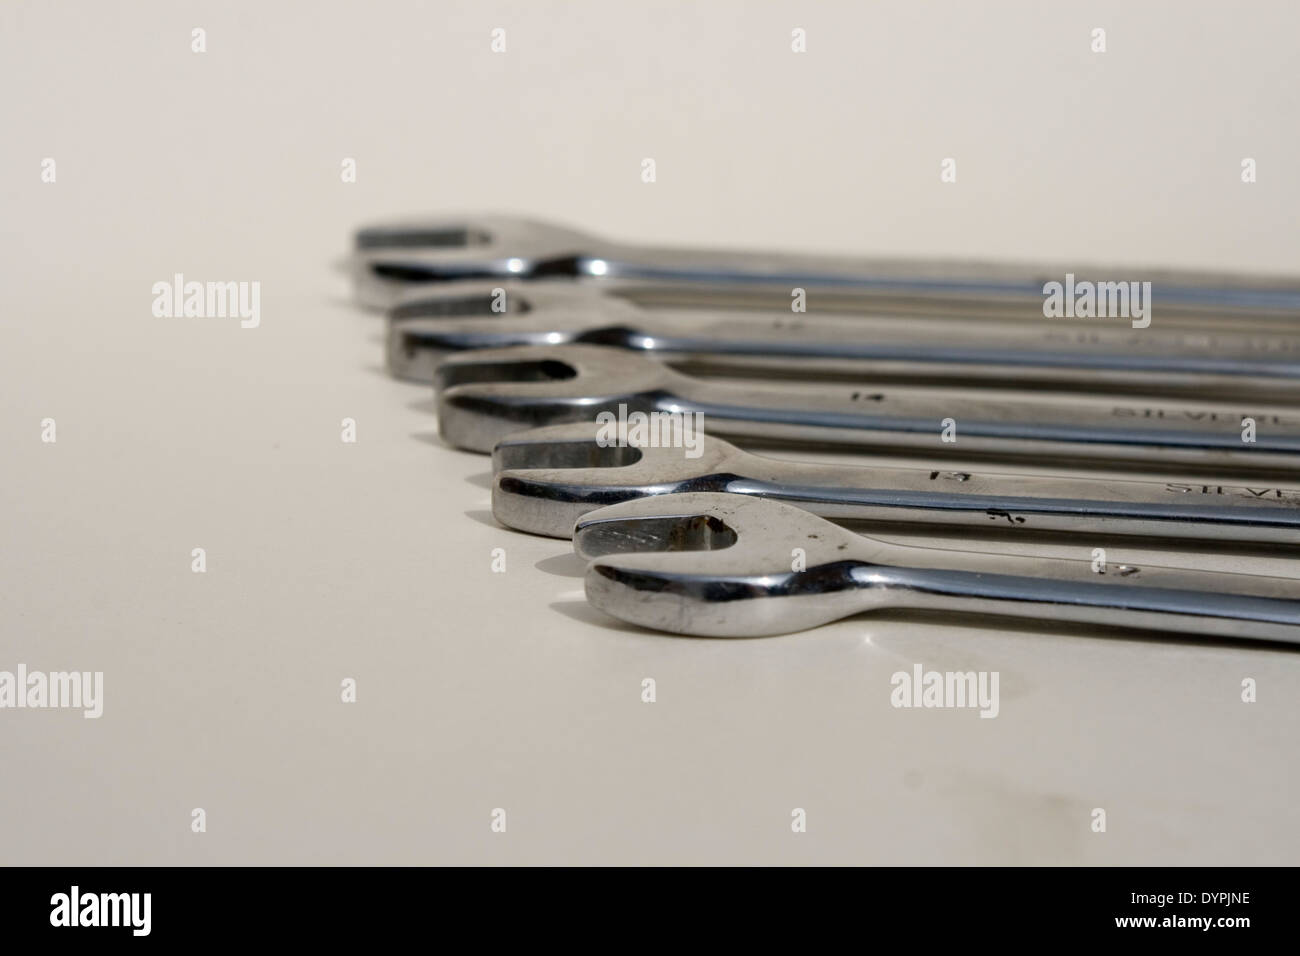 a row of spanners on a white back ground - Stock Image